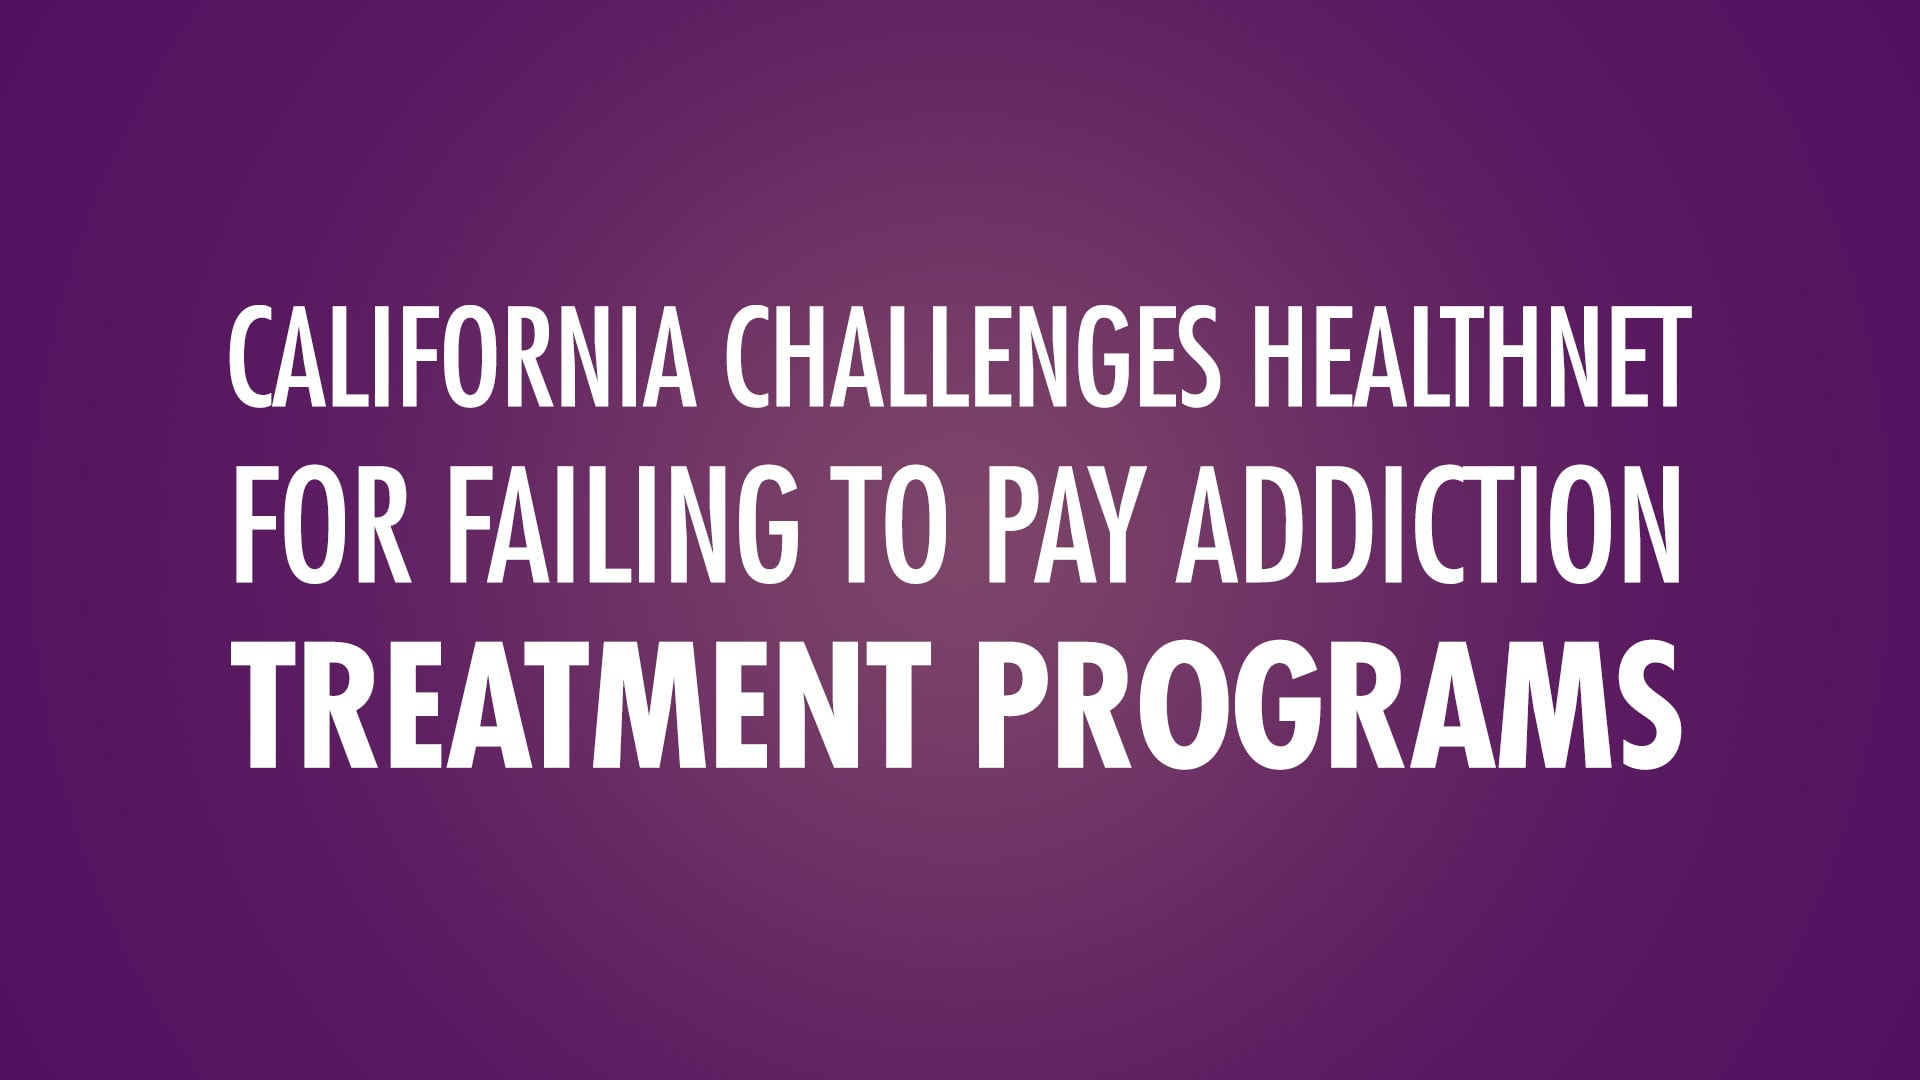 California Challenges HealthNet for Failing to Pay Addiction Treatment Programs